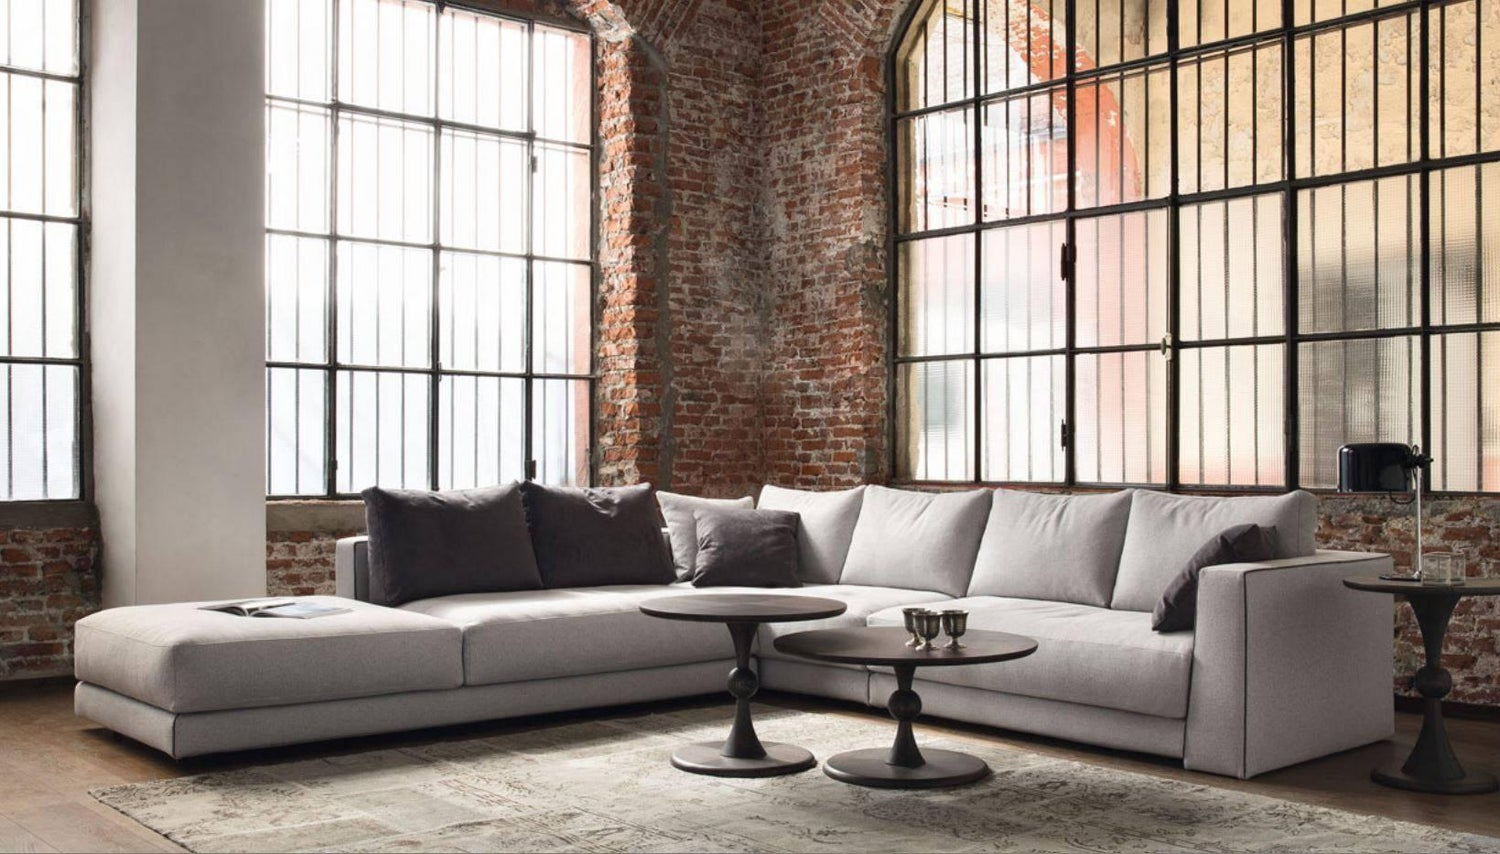 Italian Designer Sofa With Sculptural Arms Made In Italy Fabric Or